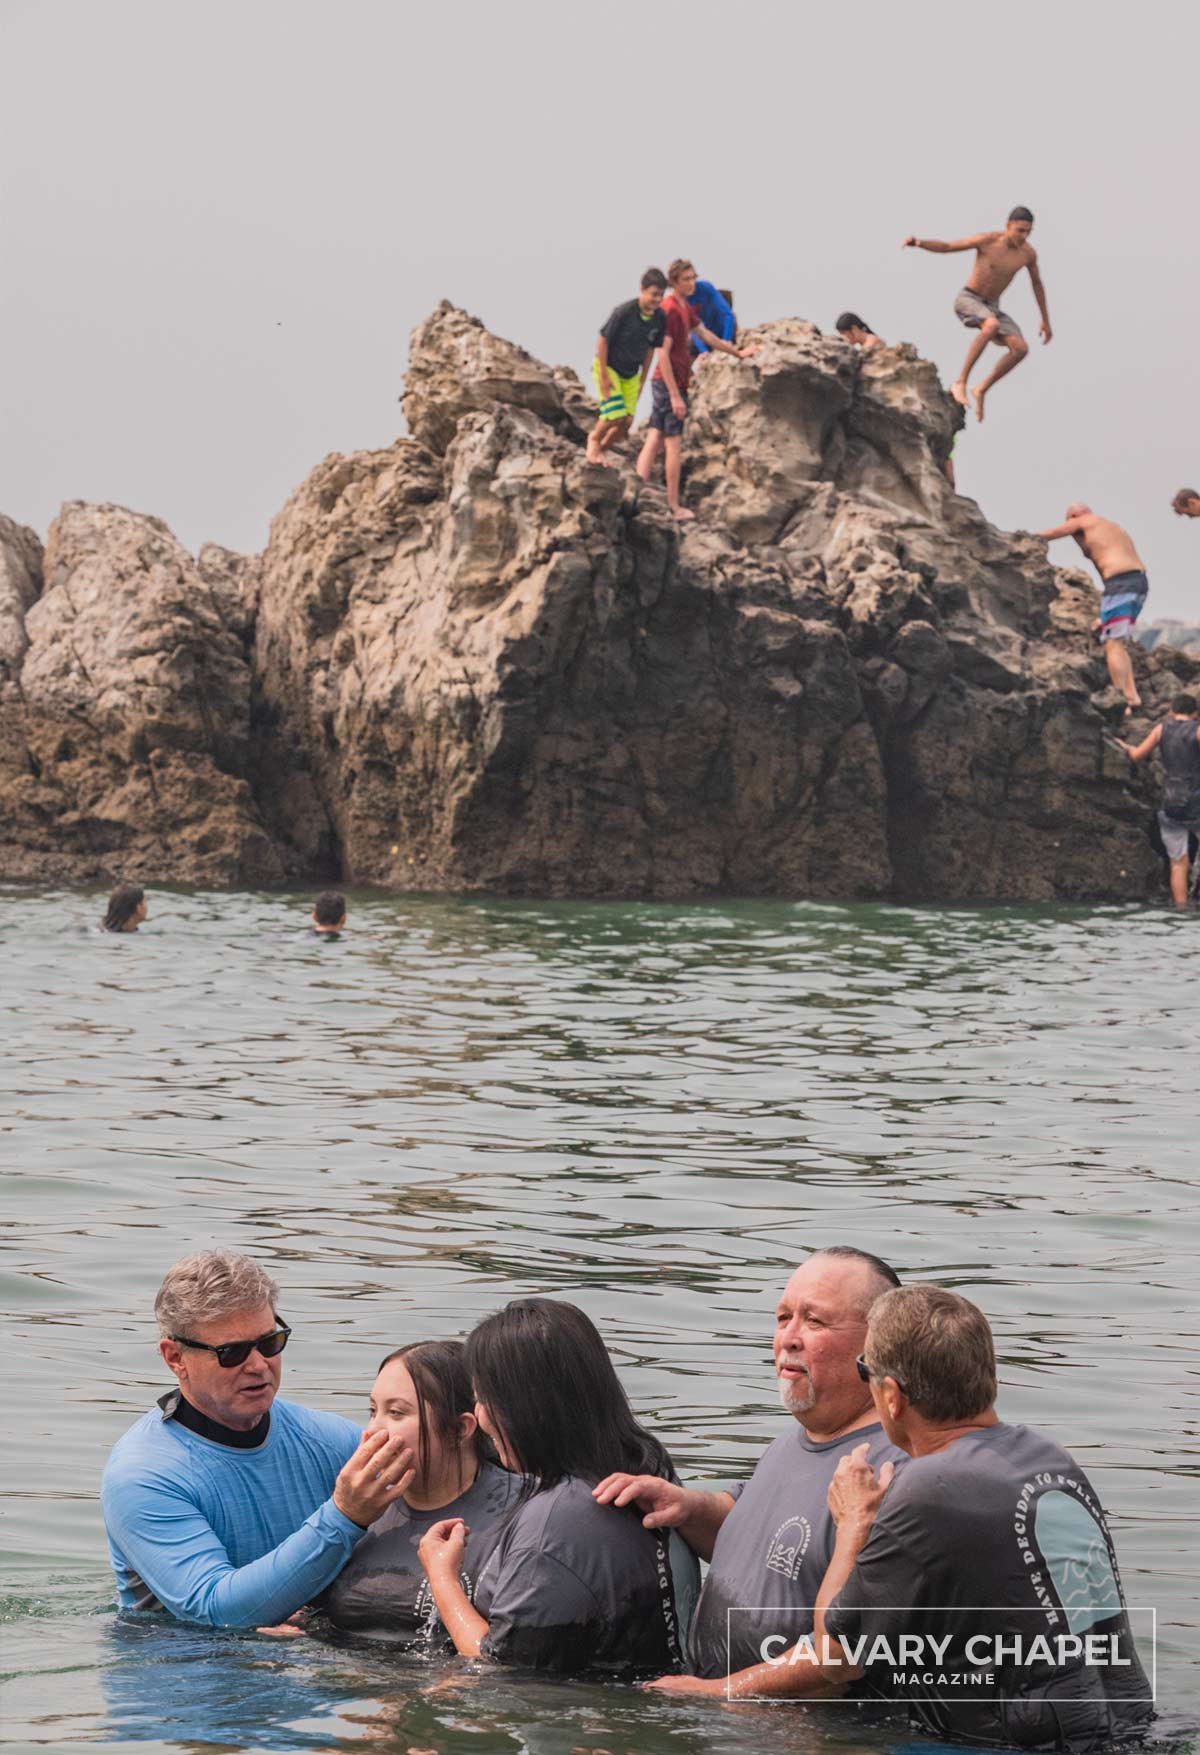 Pastor Jack baptizing people and kids jumping off rocks